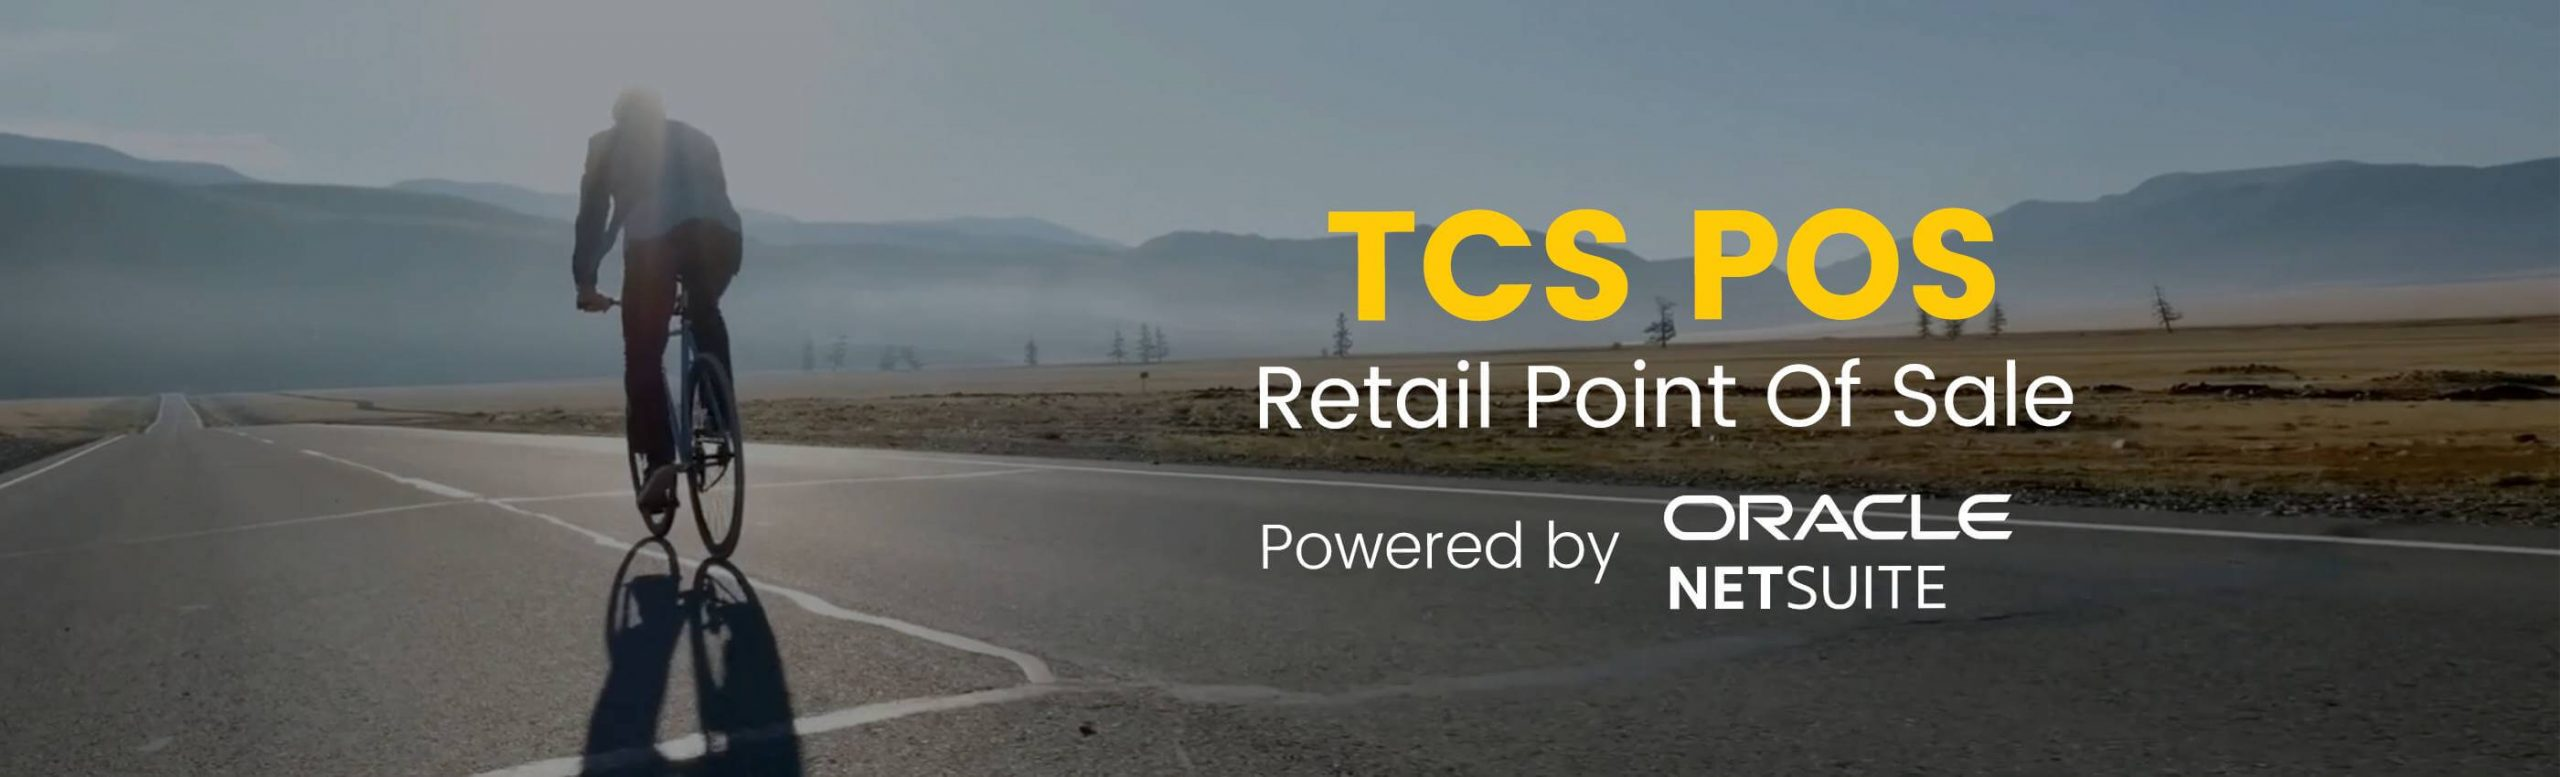 TCS POS for Oracle Netsuite POS